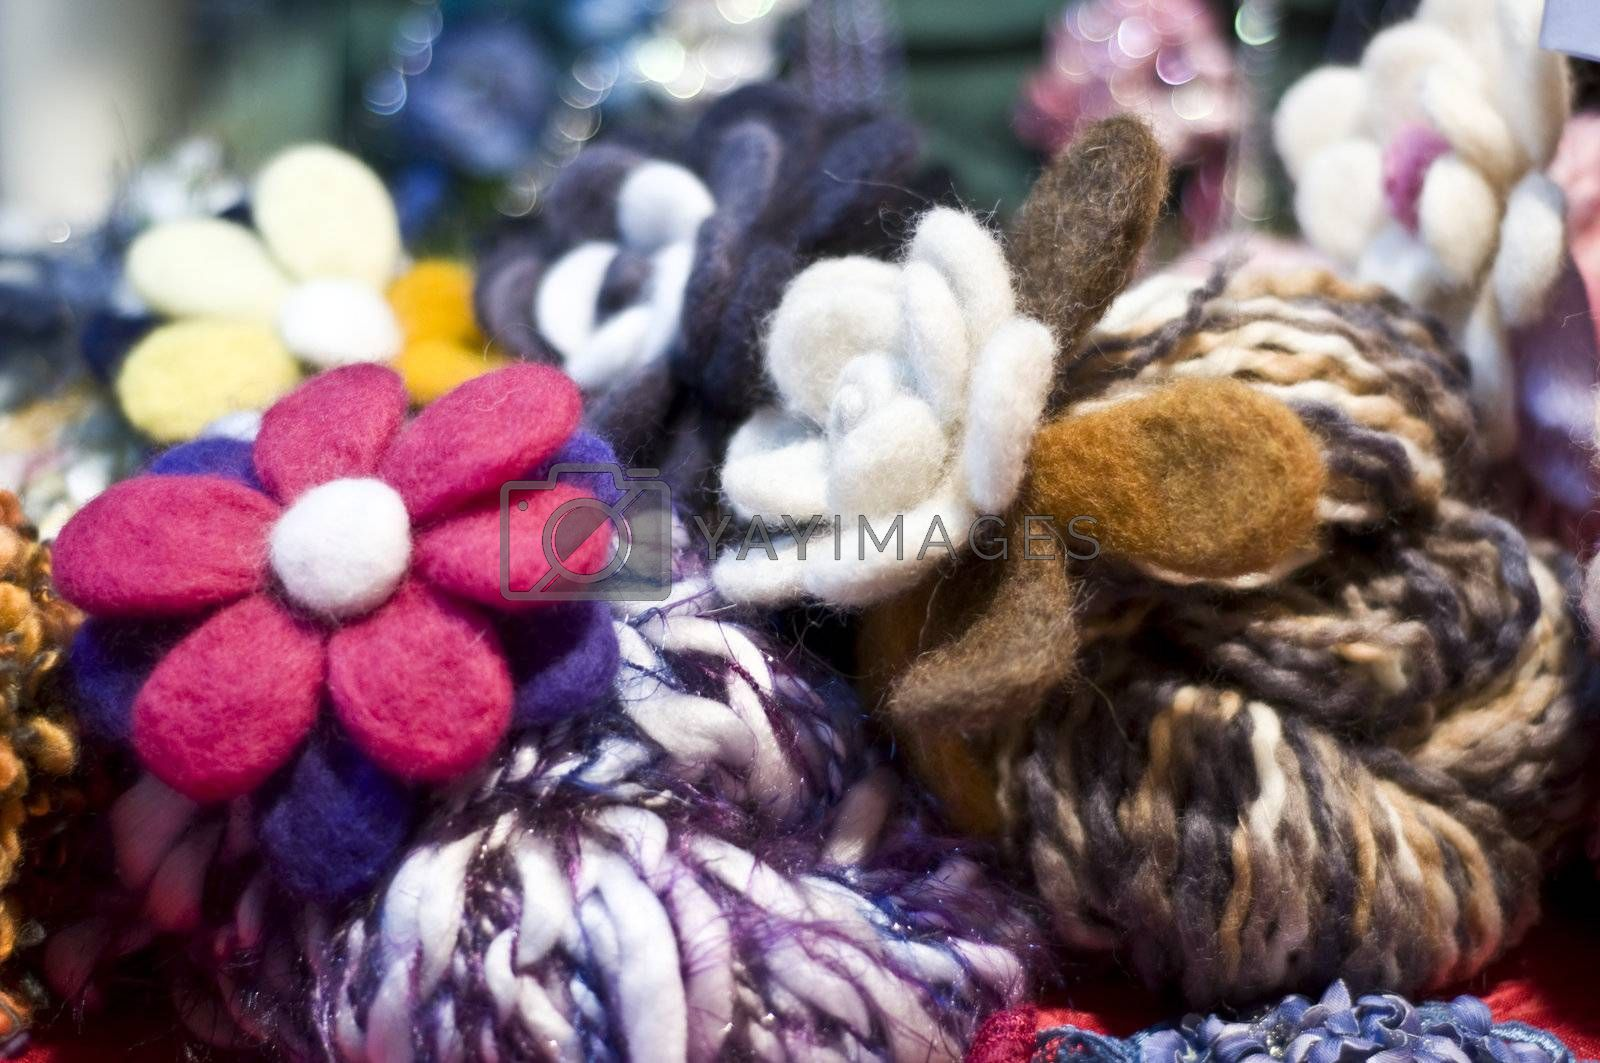 Flowers worked in wool and balls